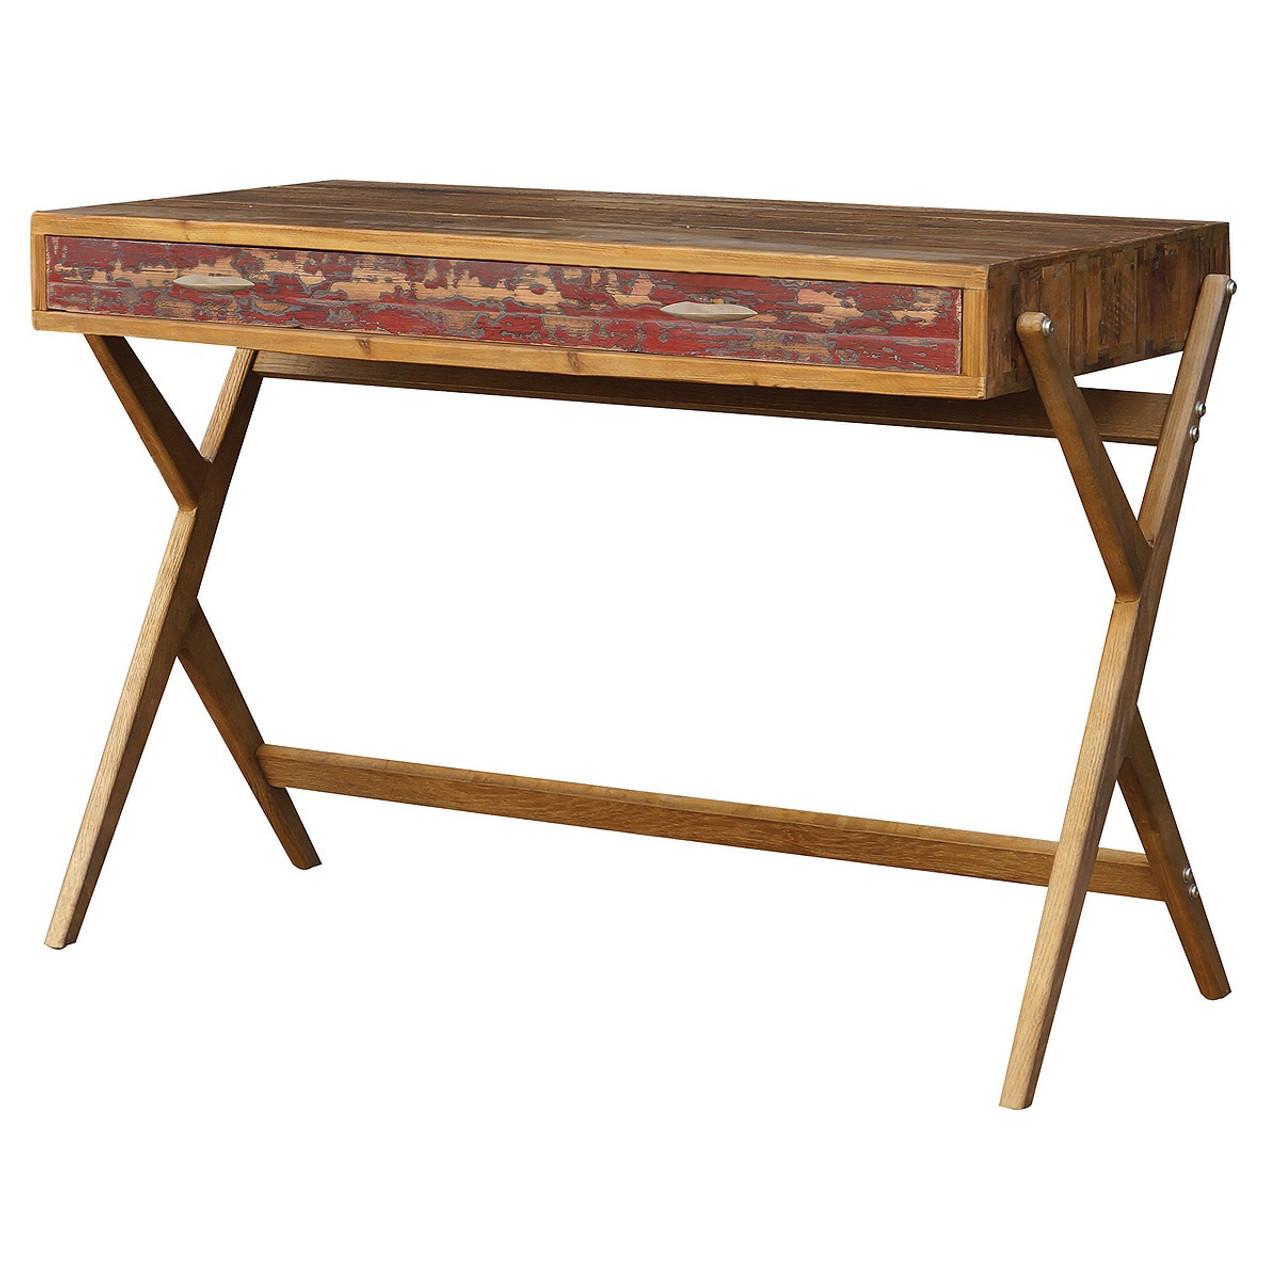 Charmant Mid Century Reclaimed Pine Home Office Desk